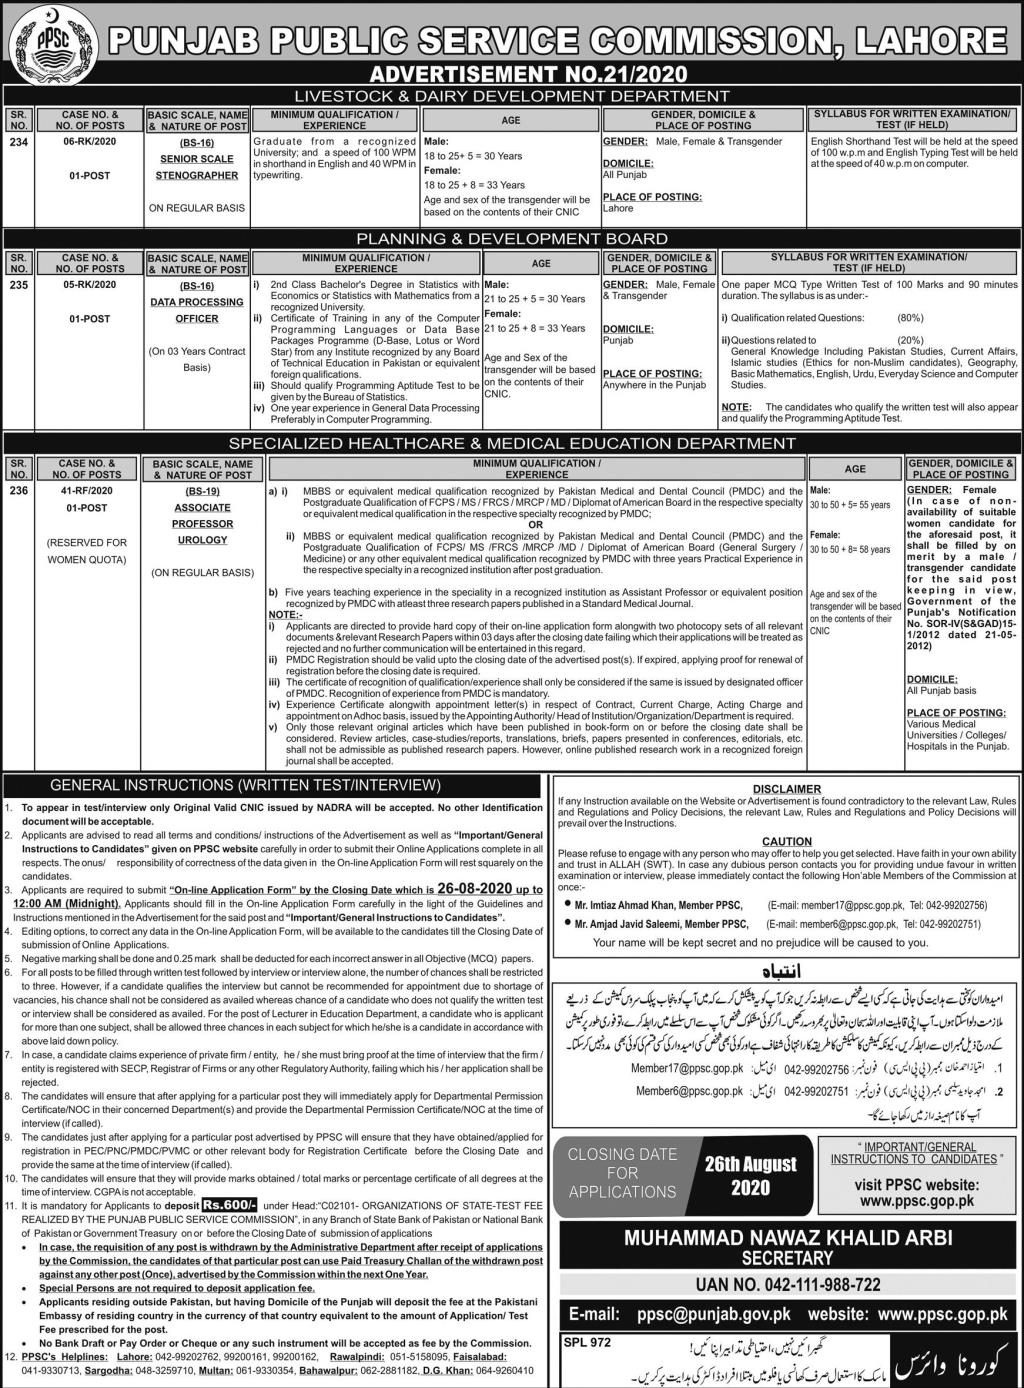 Latest PPSC Jobs Advertisement 21 of 2020